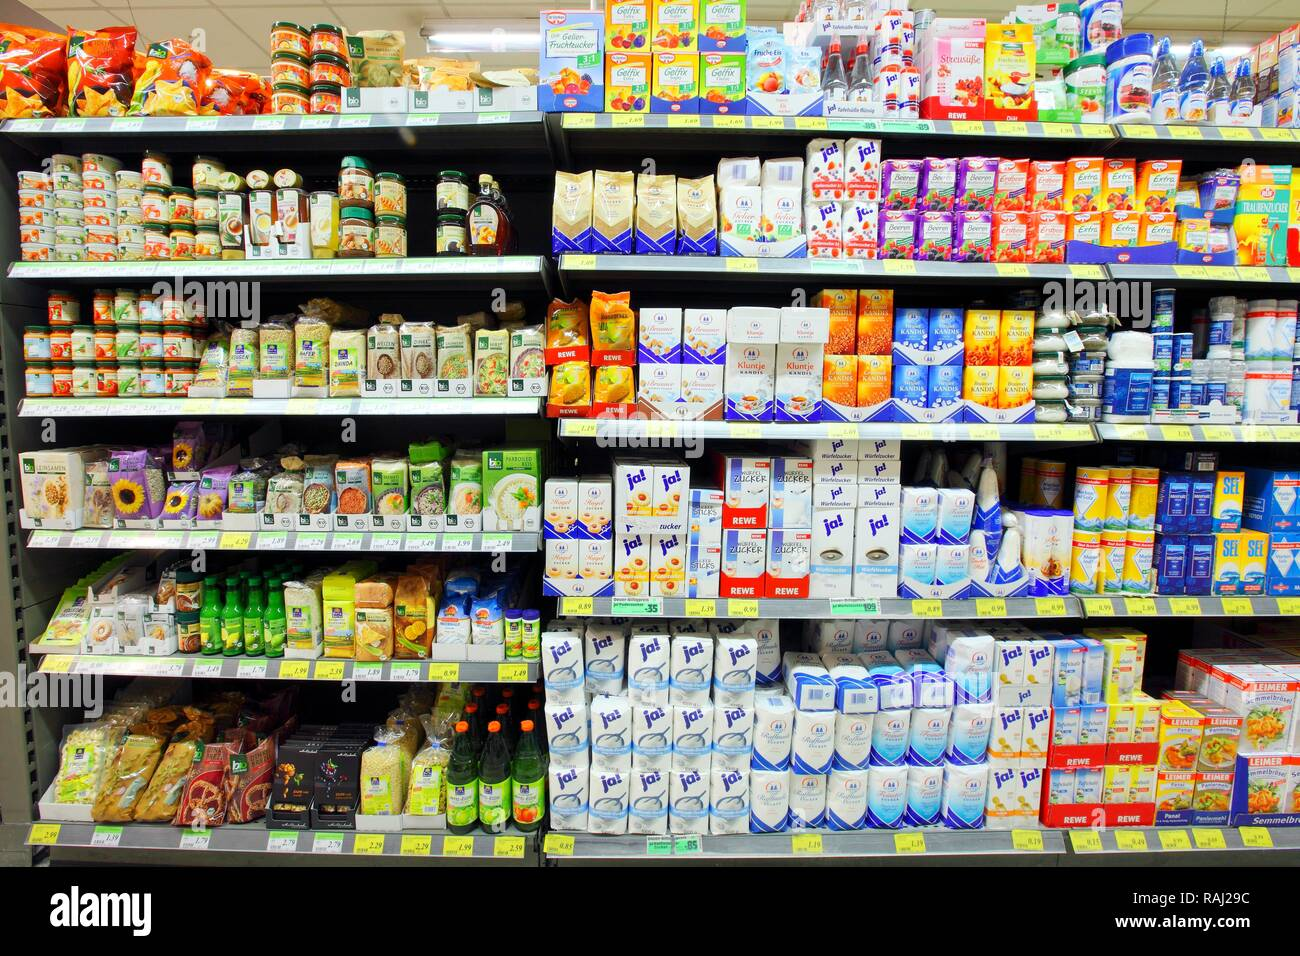 Shelves With Sugar And Artificial Sweeteners, Self-service, Food